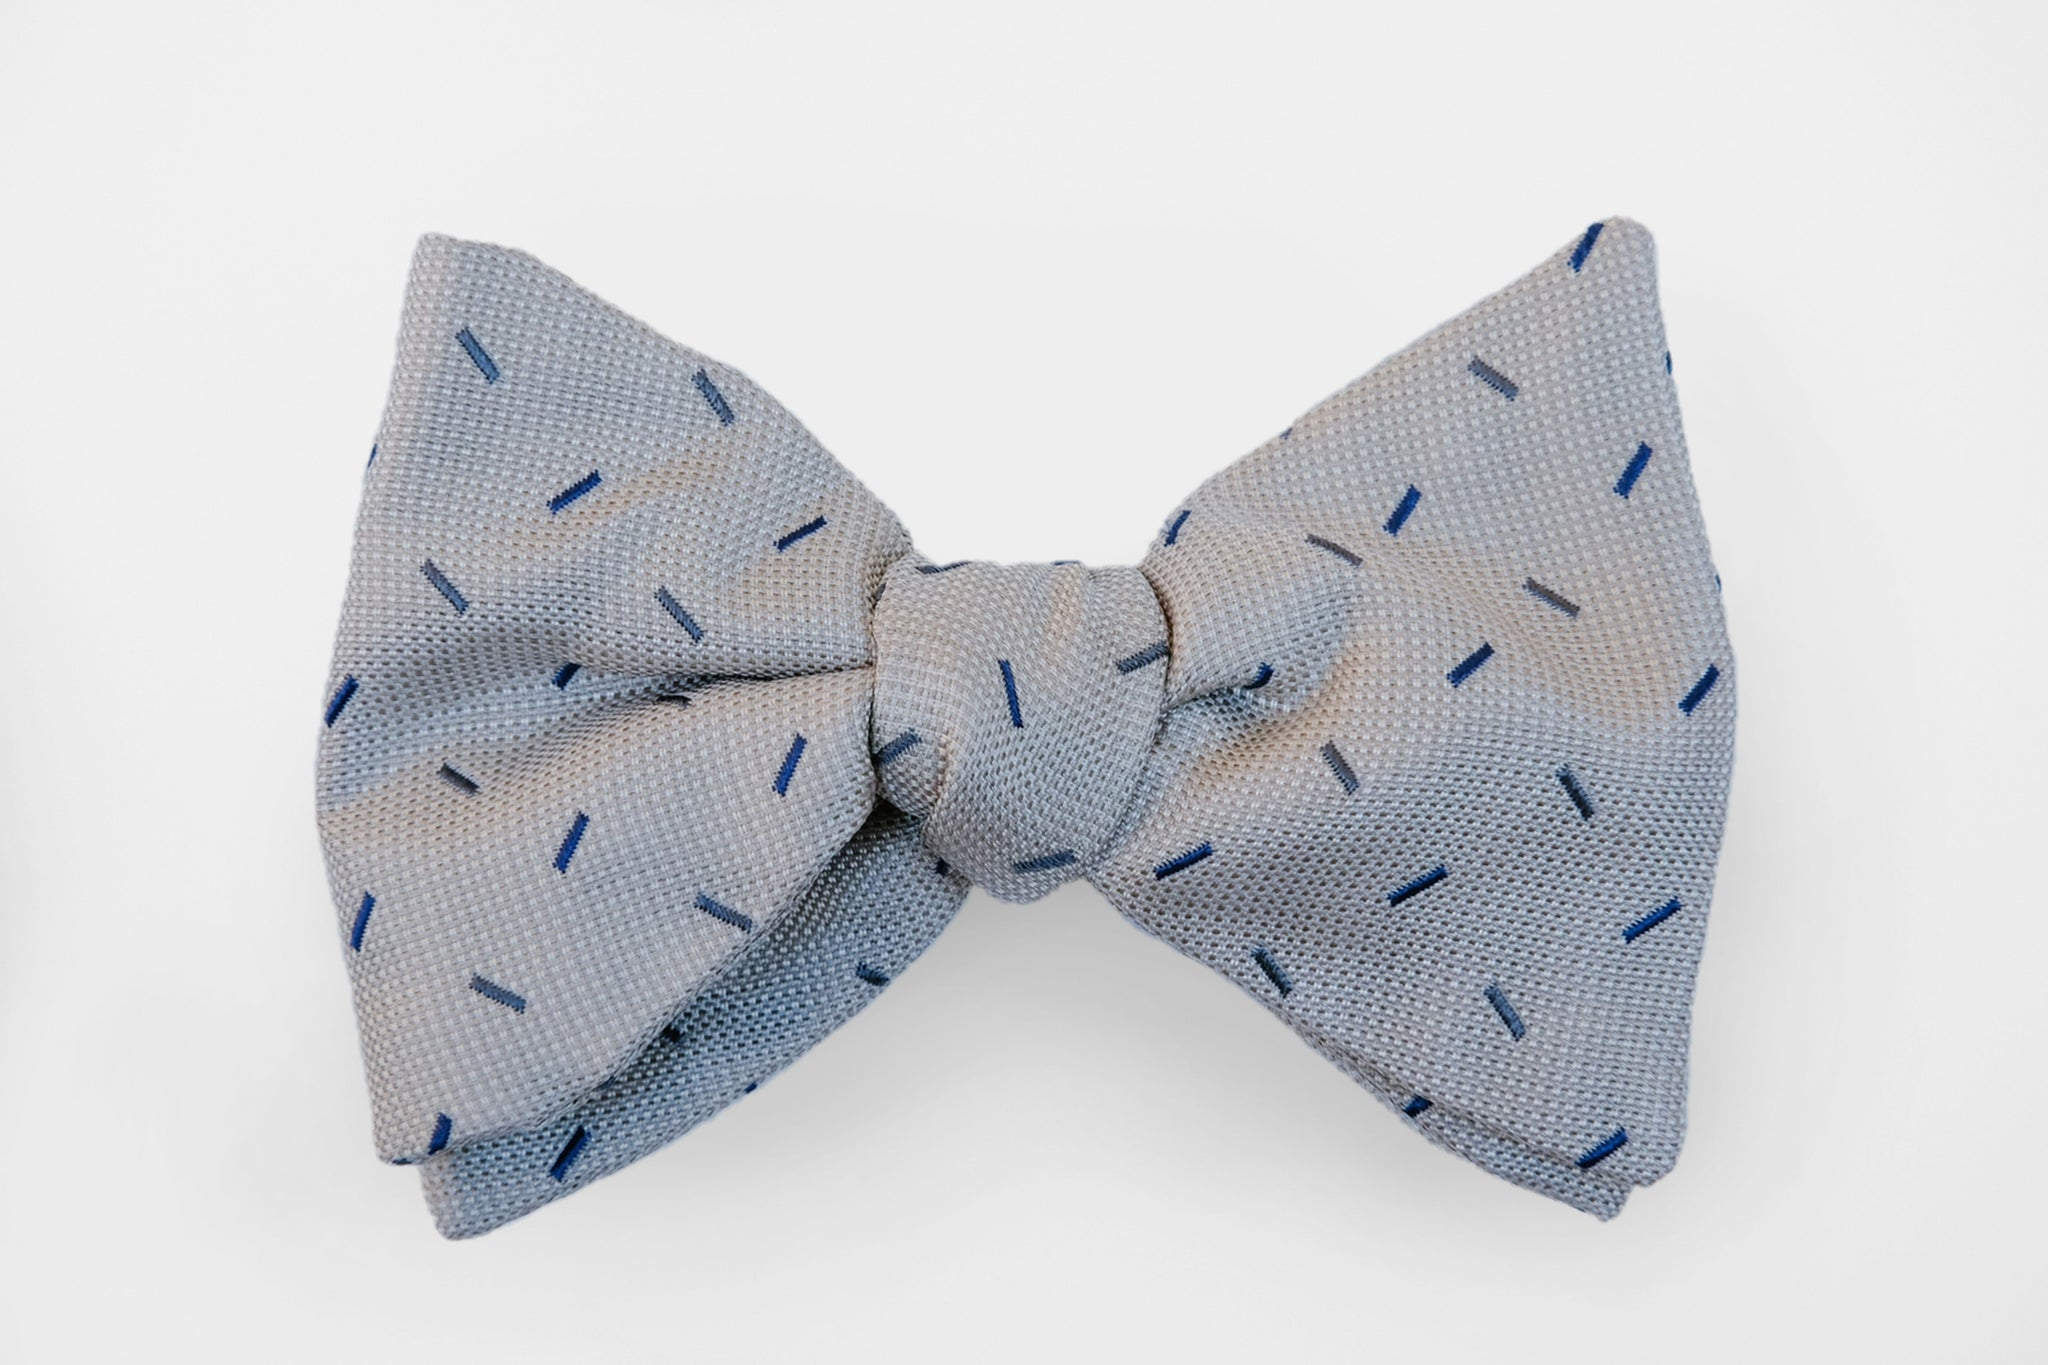 Grey/Navy Sprinkle Woven Bow Tie